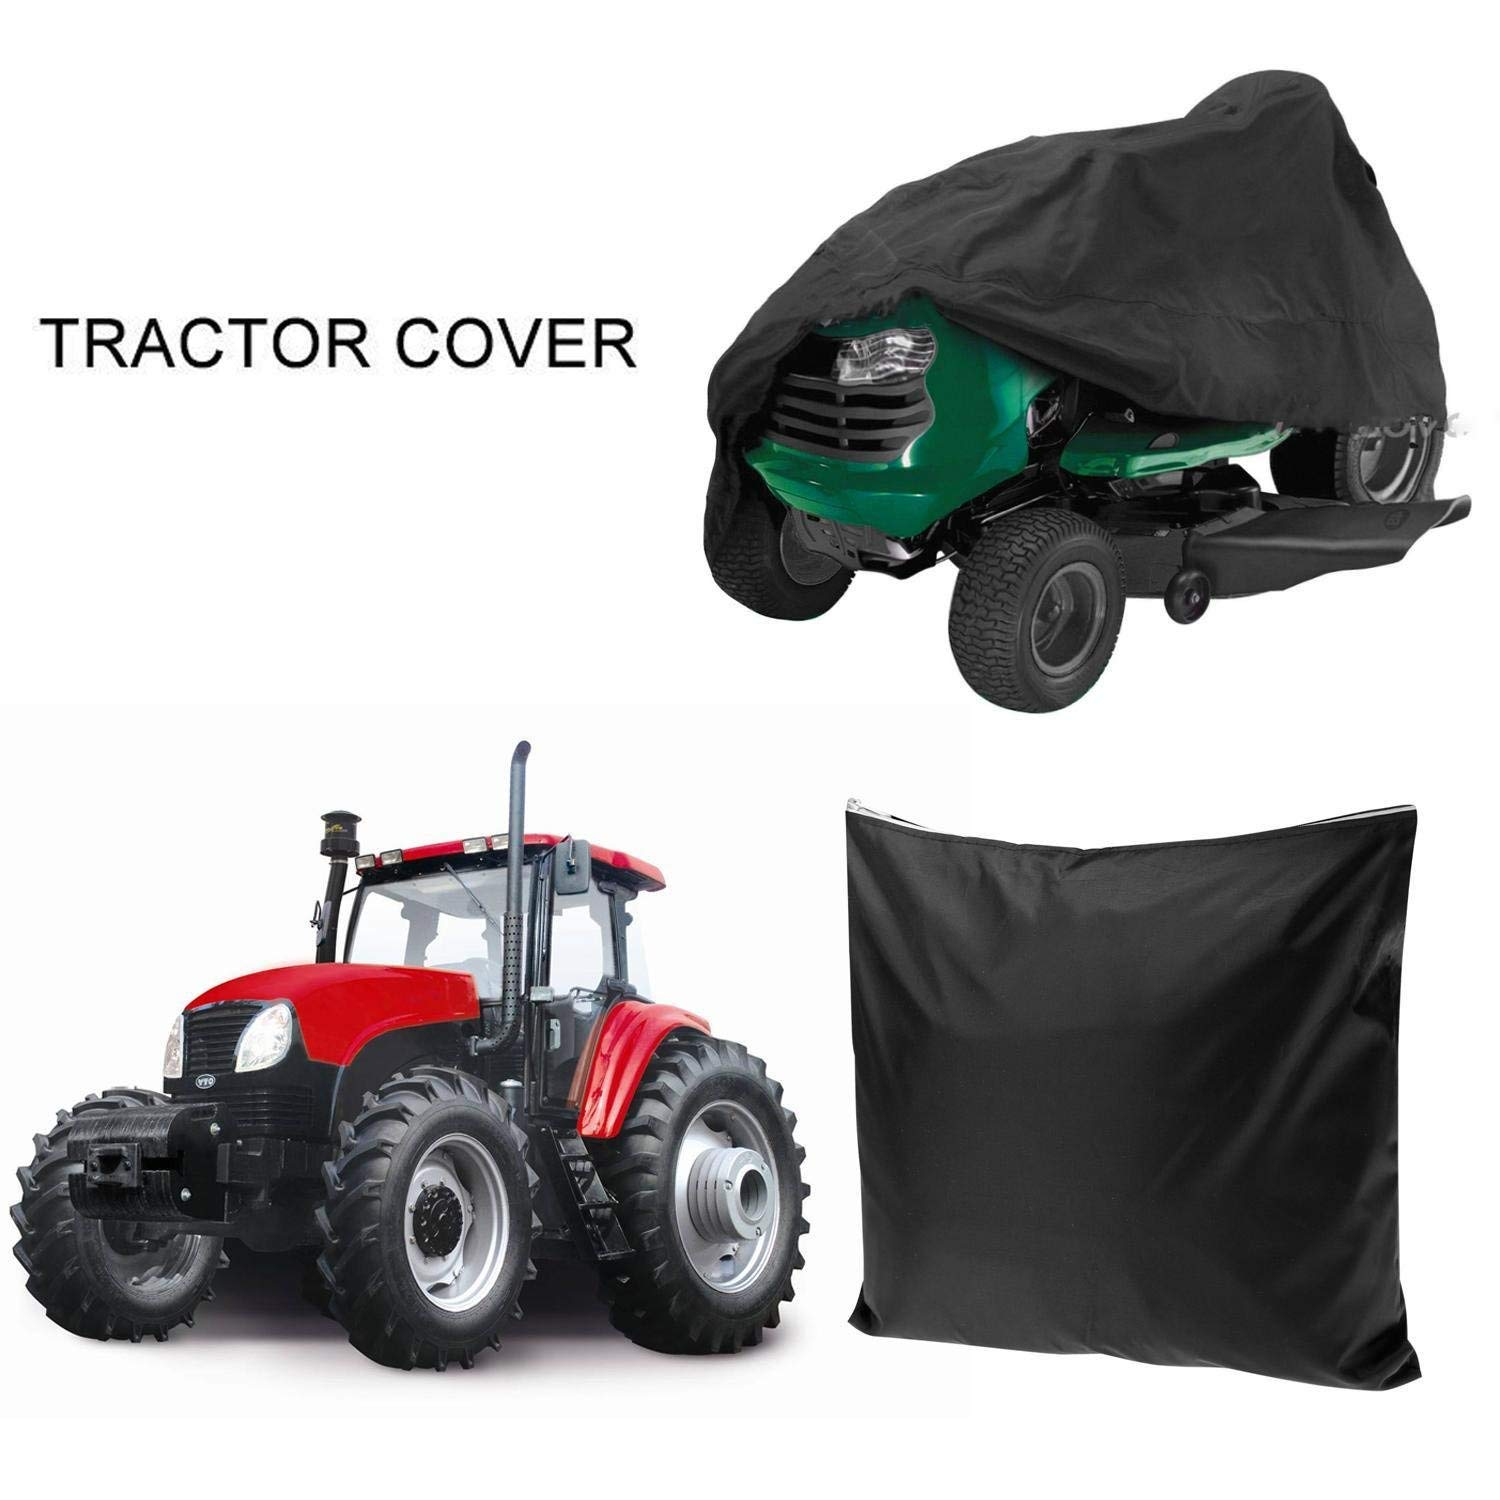 Leoneva Black 54-Inch Waterproof Tractor Cover, Riding Lawn Mower Cover for Garden Yard (Black)